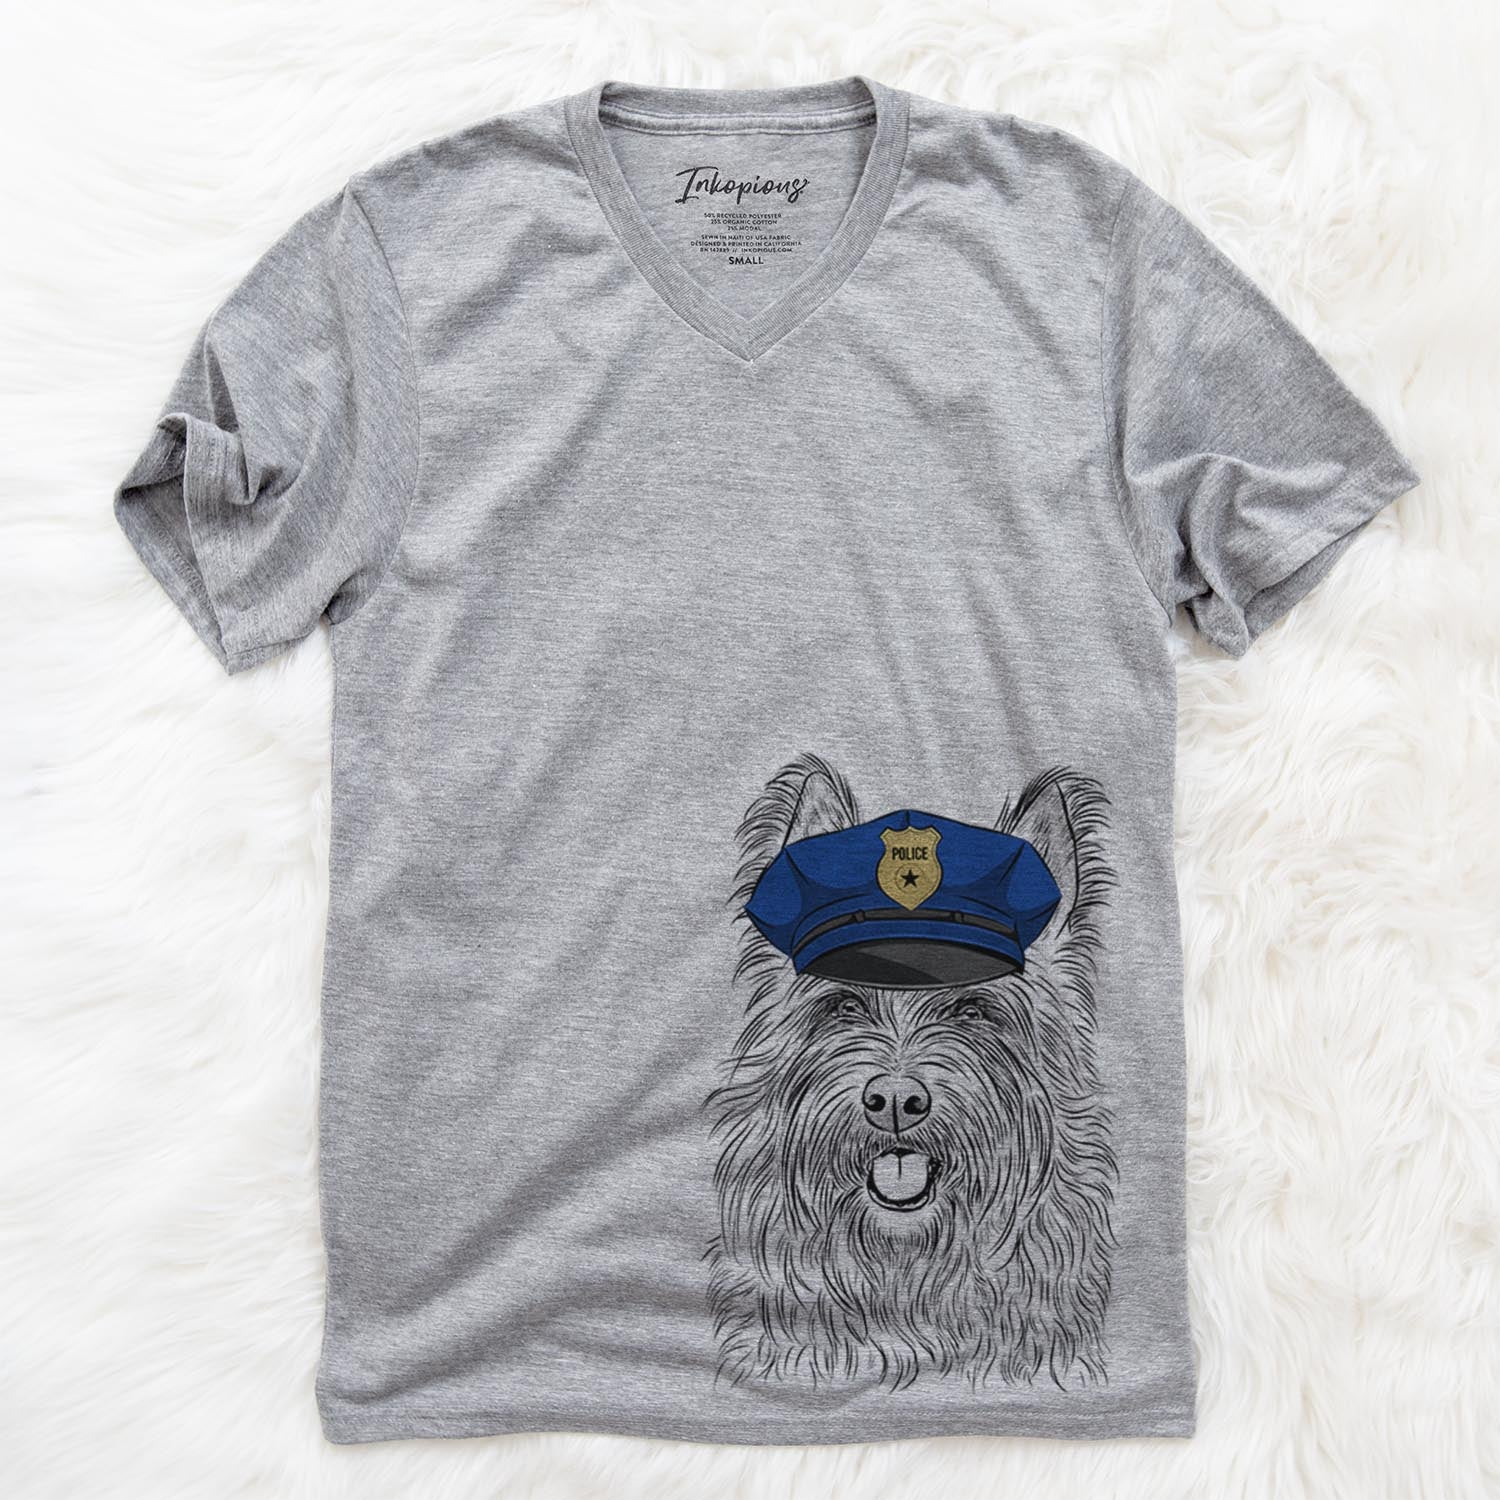 Kyros the Berger Picard  - Police Collection